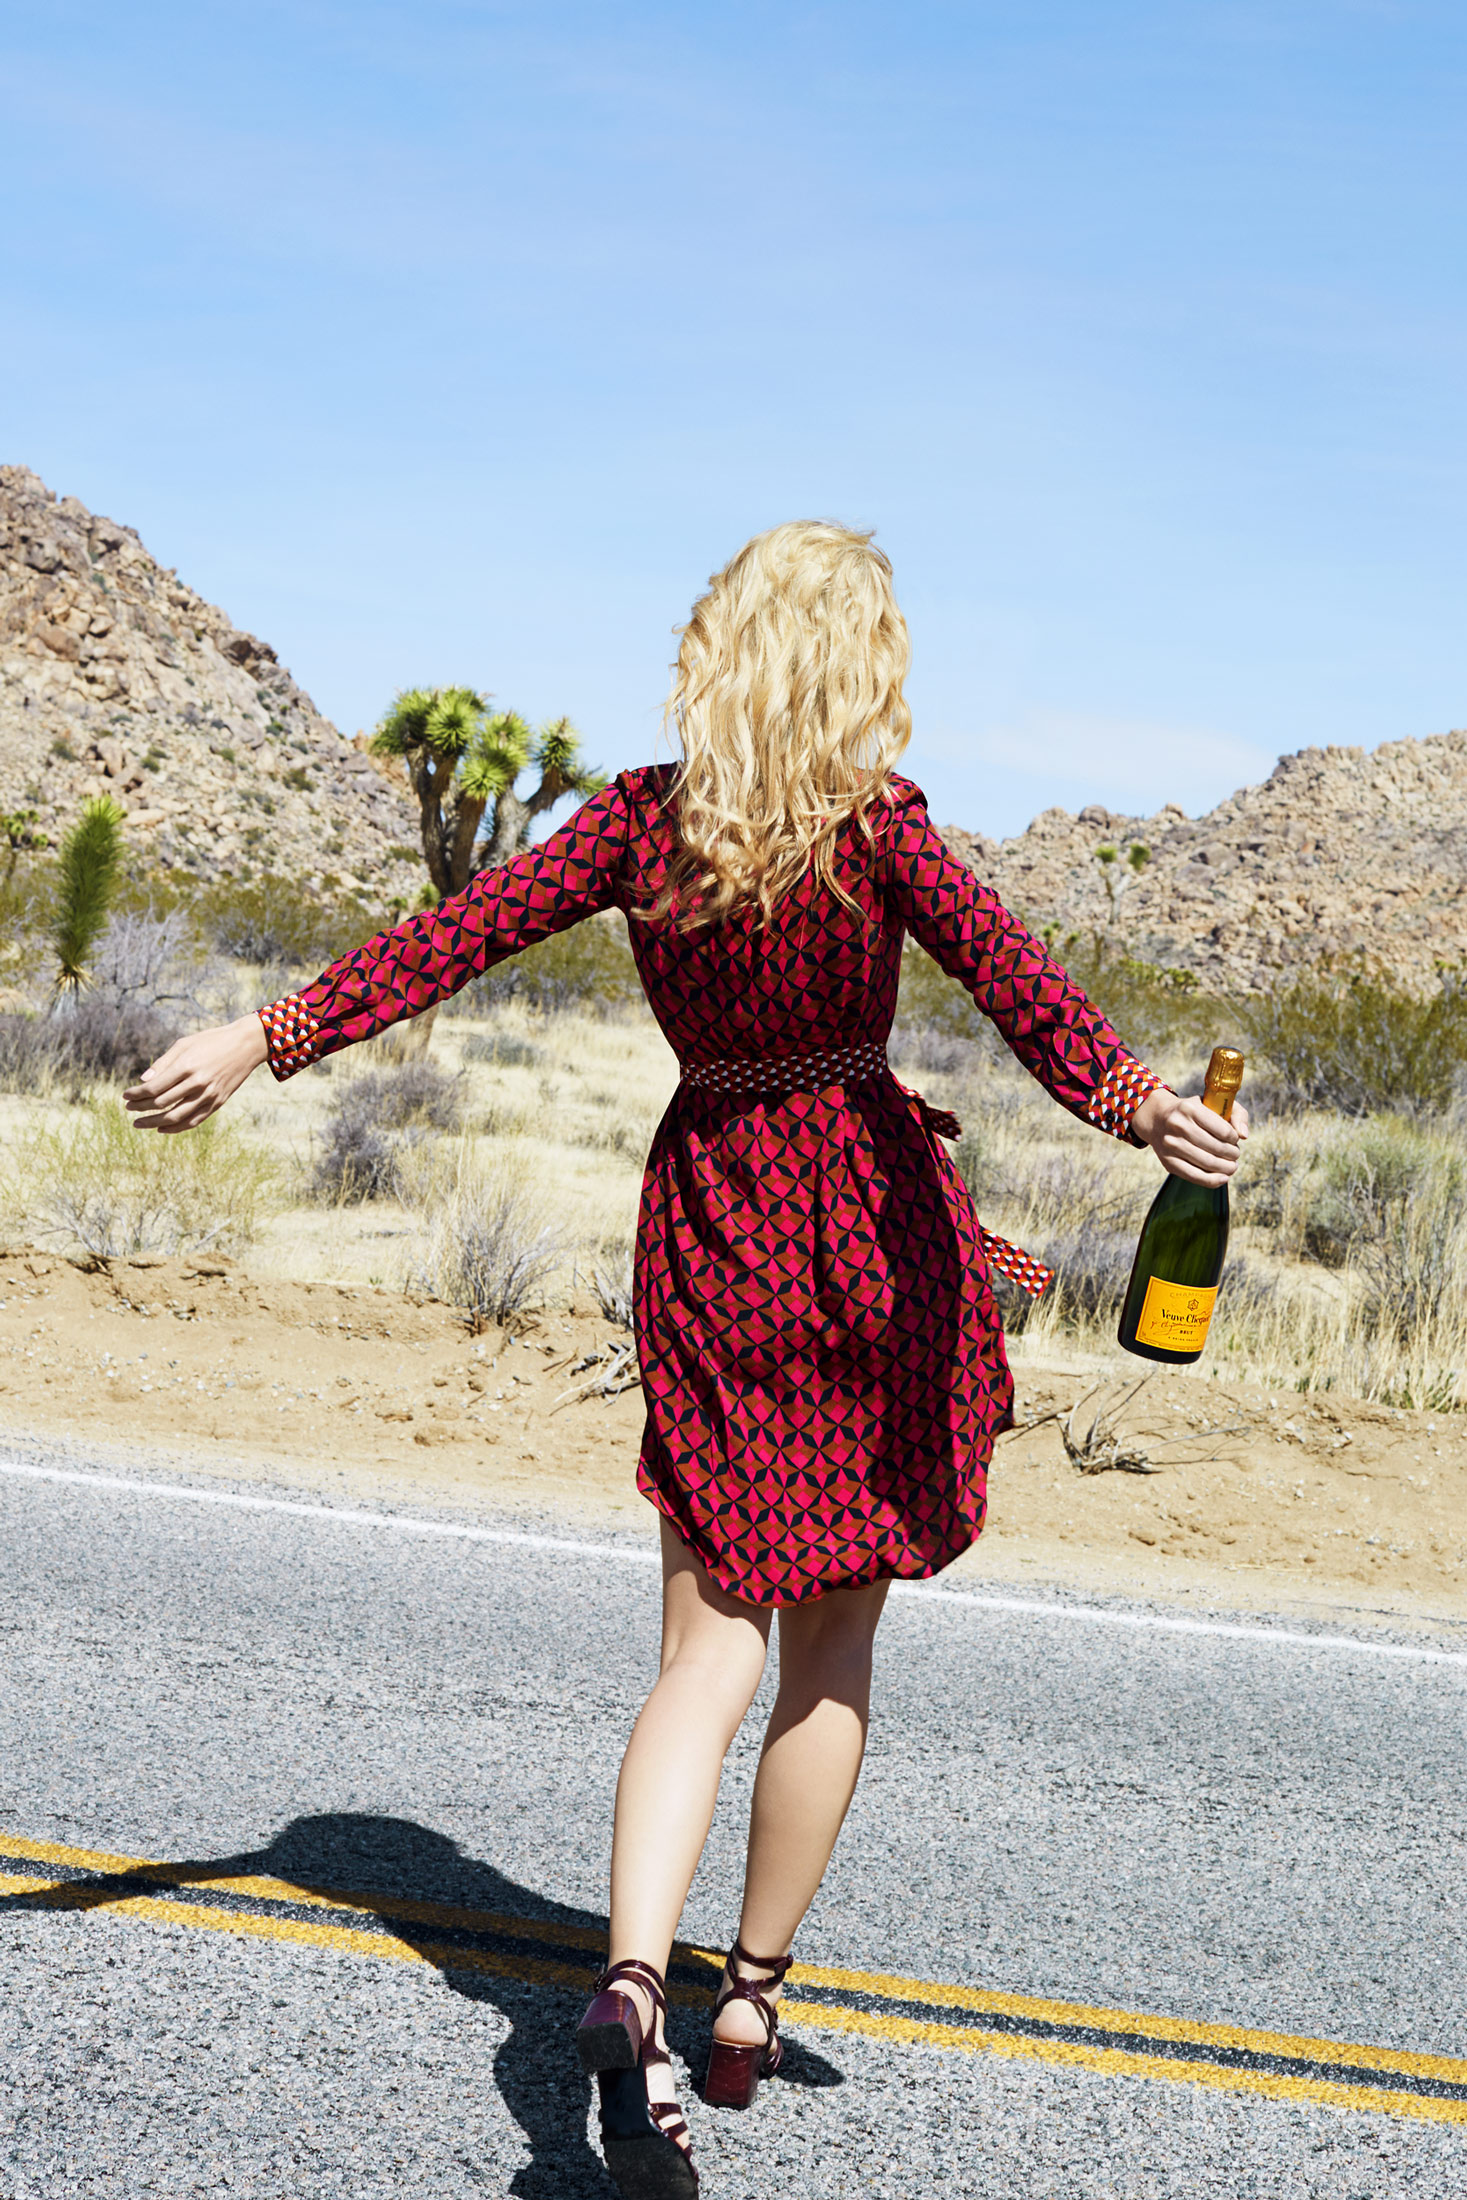 Girl wearing a dress walking away with a bottle of champagne - Kimberly Genevieve Los Angeles Advertising Photographer